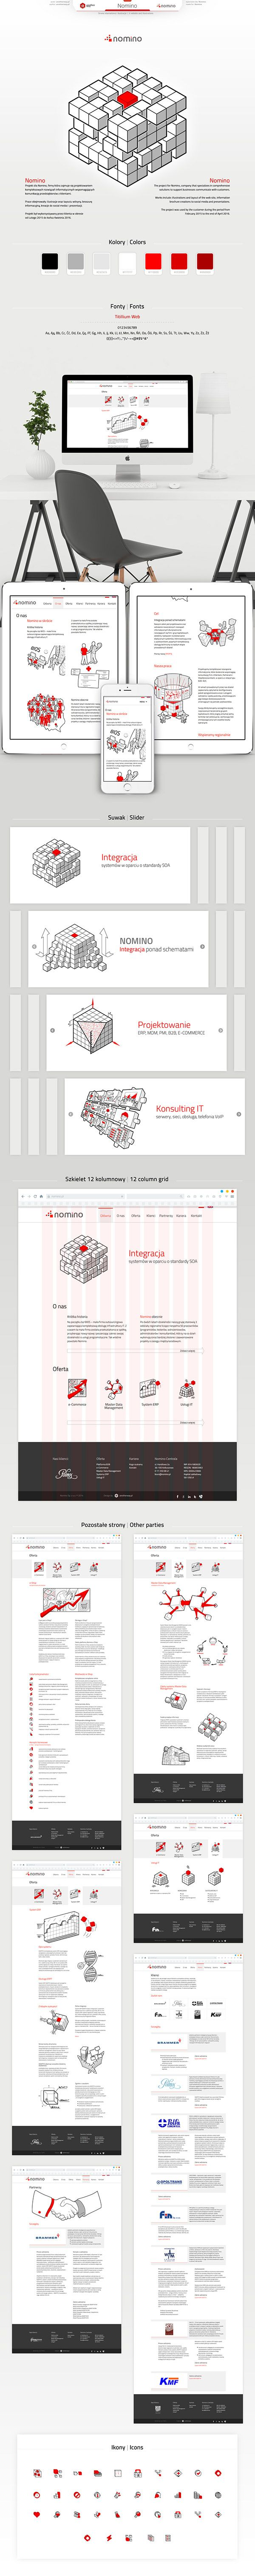 Nomino  #illustration, #lineart, #corporateidentity, #leaflet, #website, #drowings